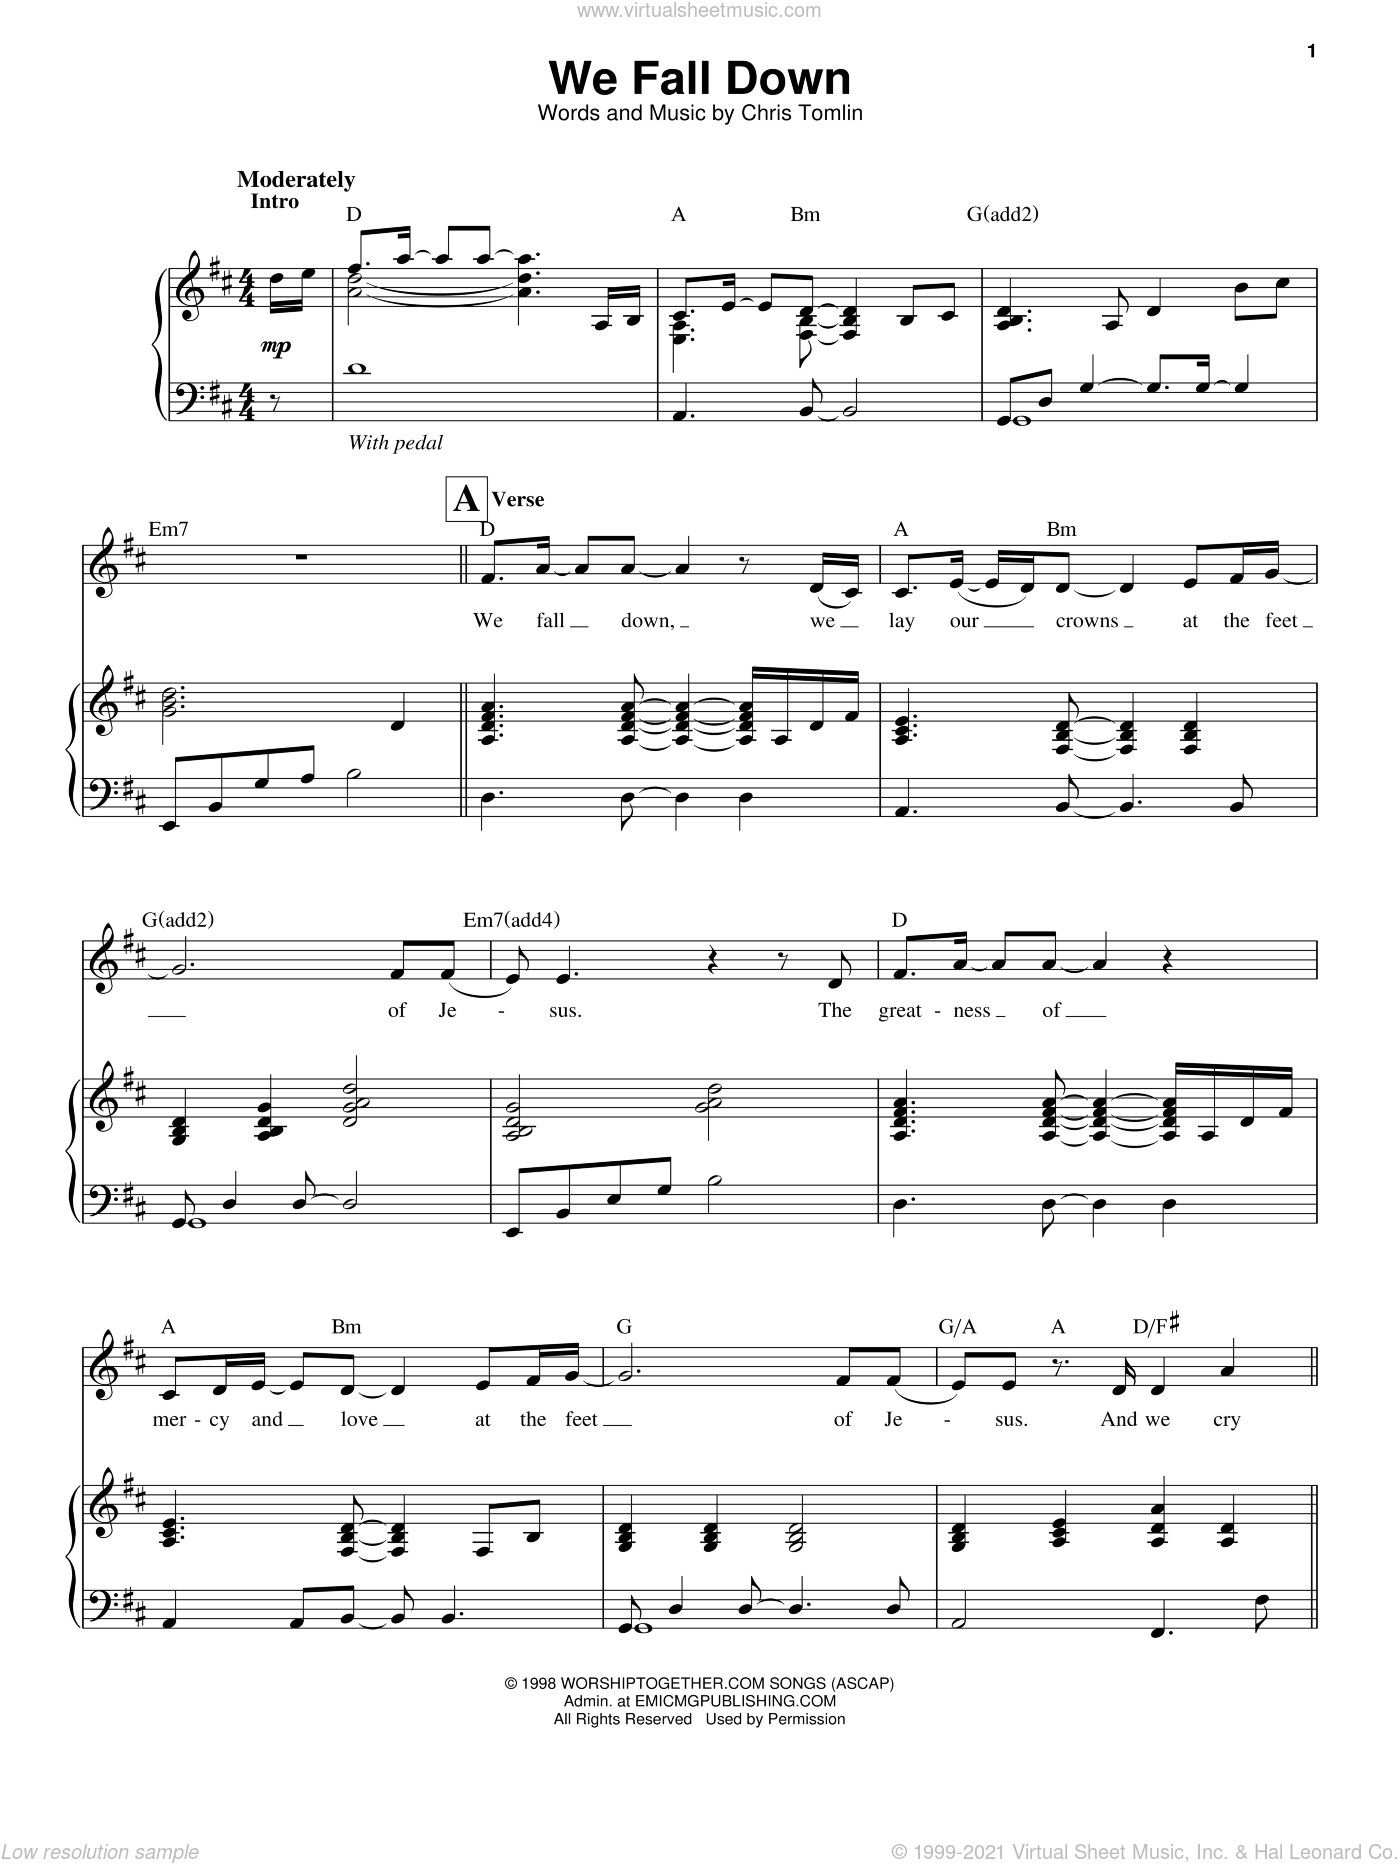 We Fall Down sheet music for voice and piano by Chris Tomlin and Kutless, intermediate skill level